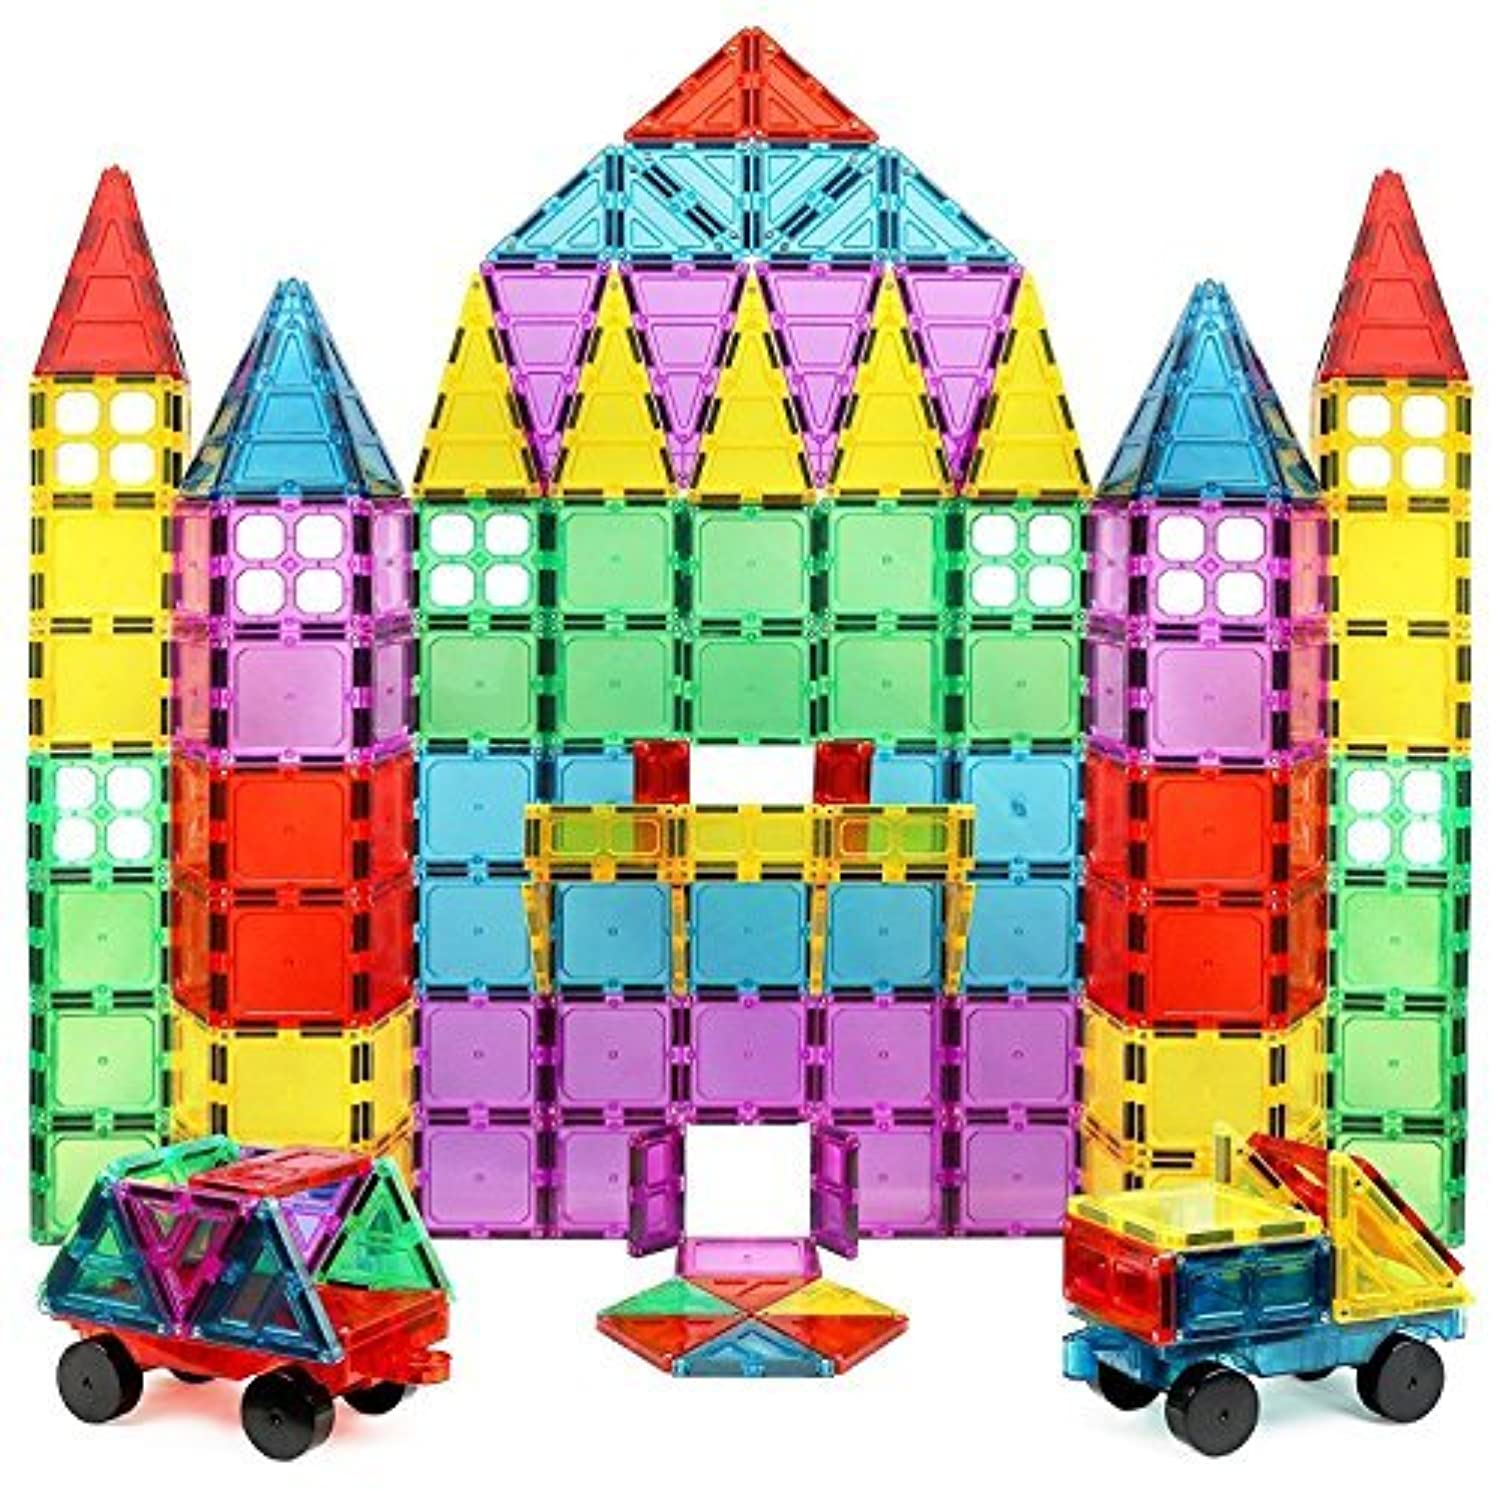 Magnet Build Deluxe 100 Piece 3D Magnetic Tile Building Set Extra Strong Magnets and Super Durable Tiles Educational Creative Assorted Shapes and Vibrant Bright Colors [並行輸入品]